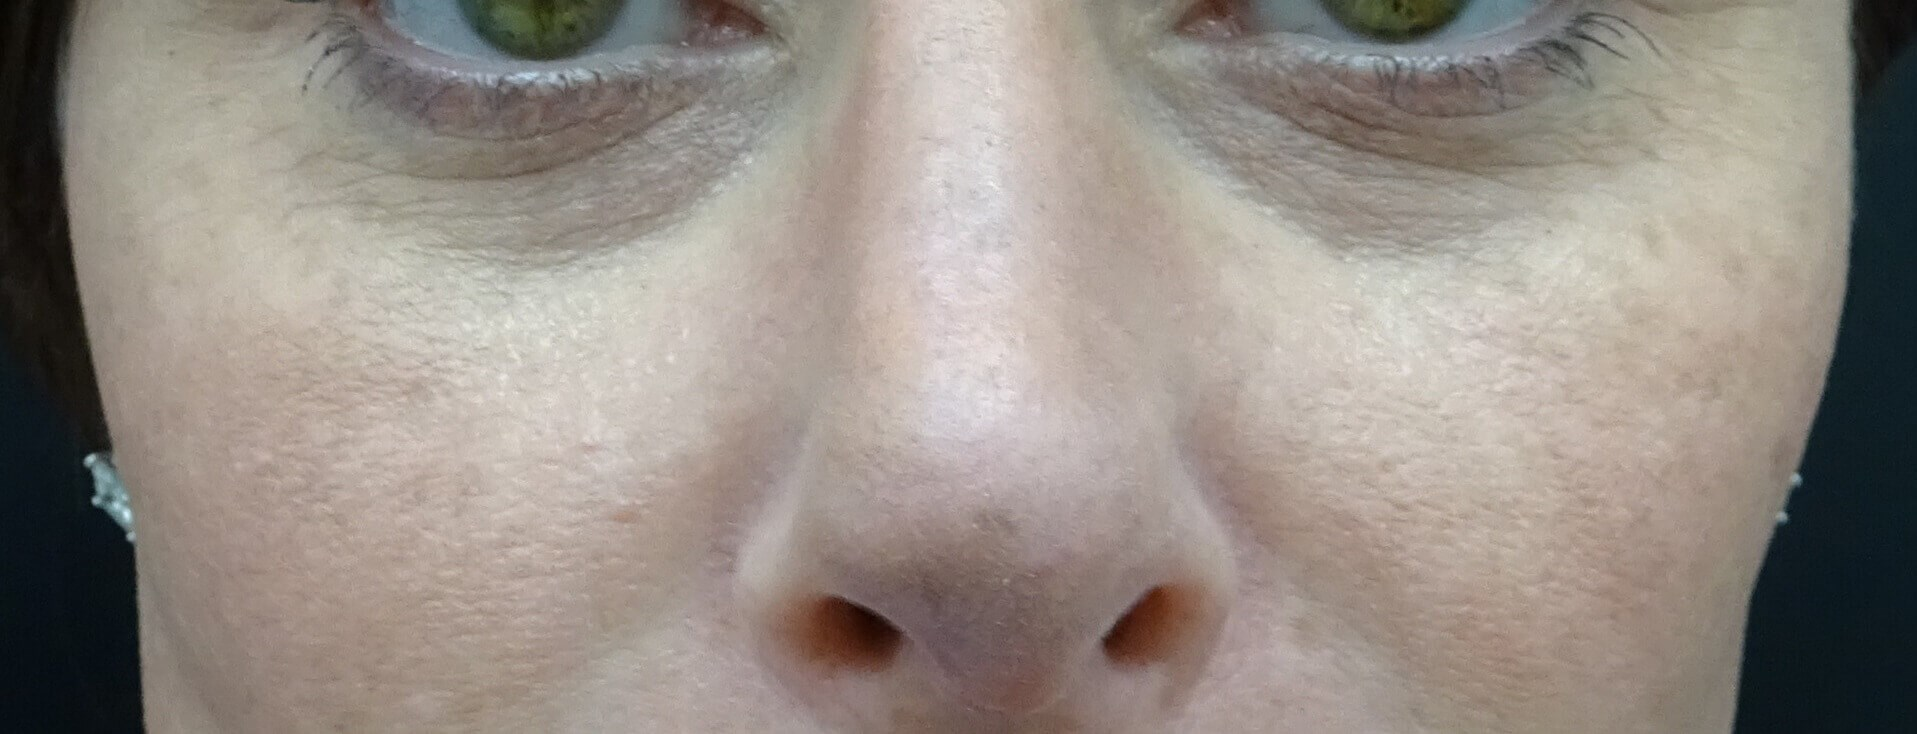 Juvederm Voluma in Las Vegas Before Juvederm